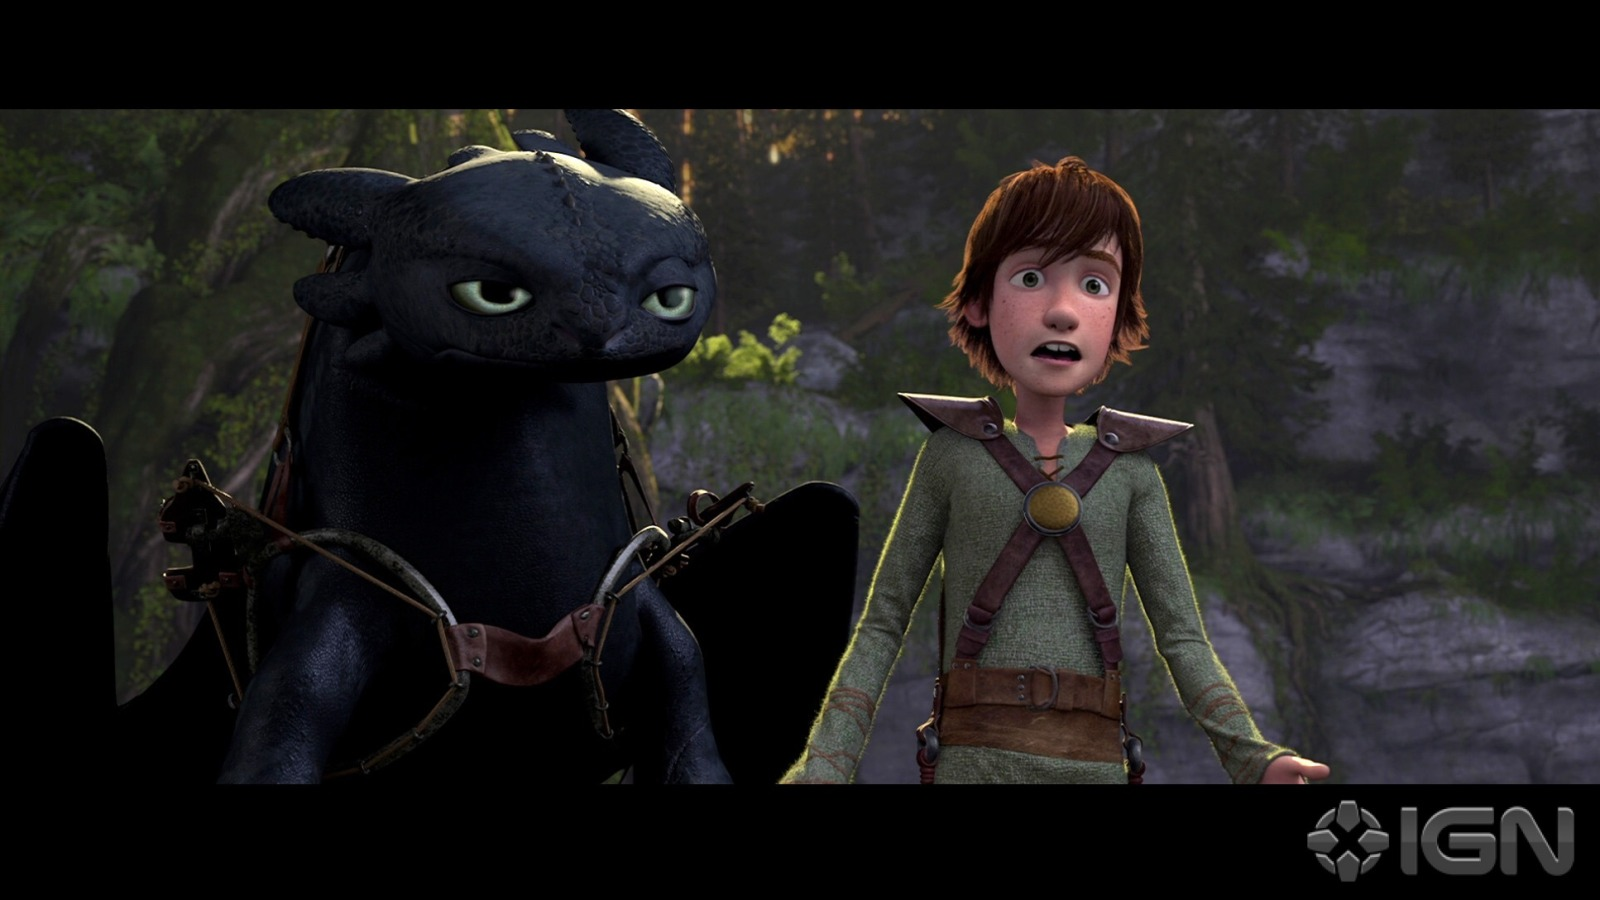 How To Train Your Dragon 2 Porn Cool porn gif how to train your dragon